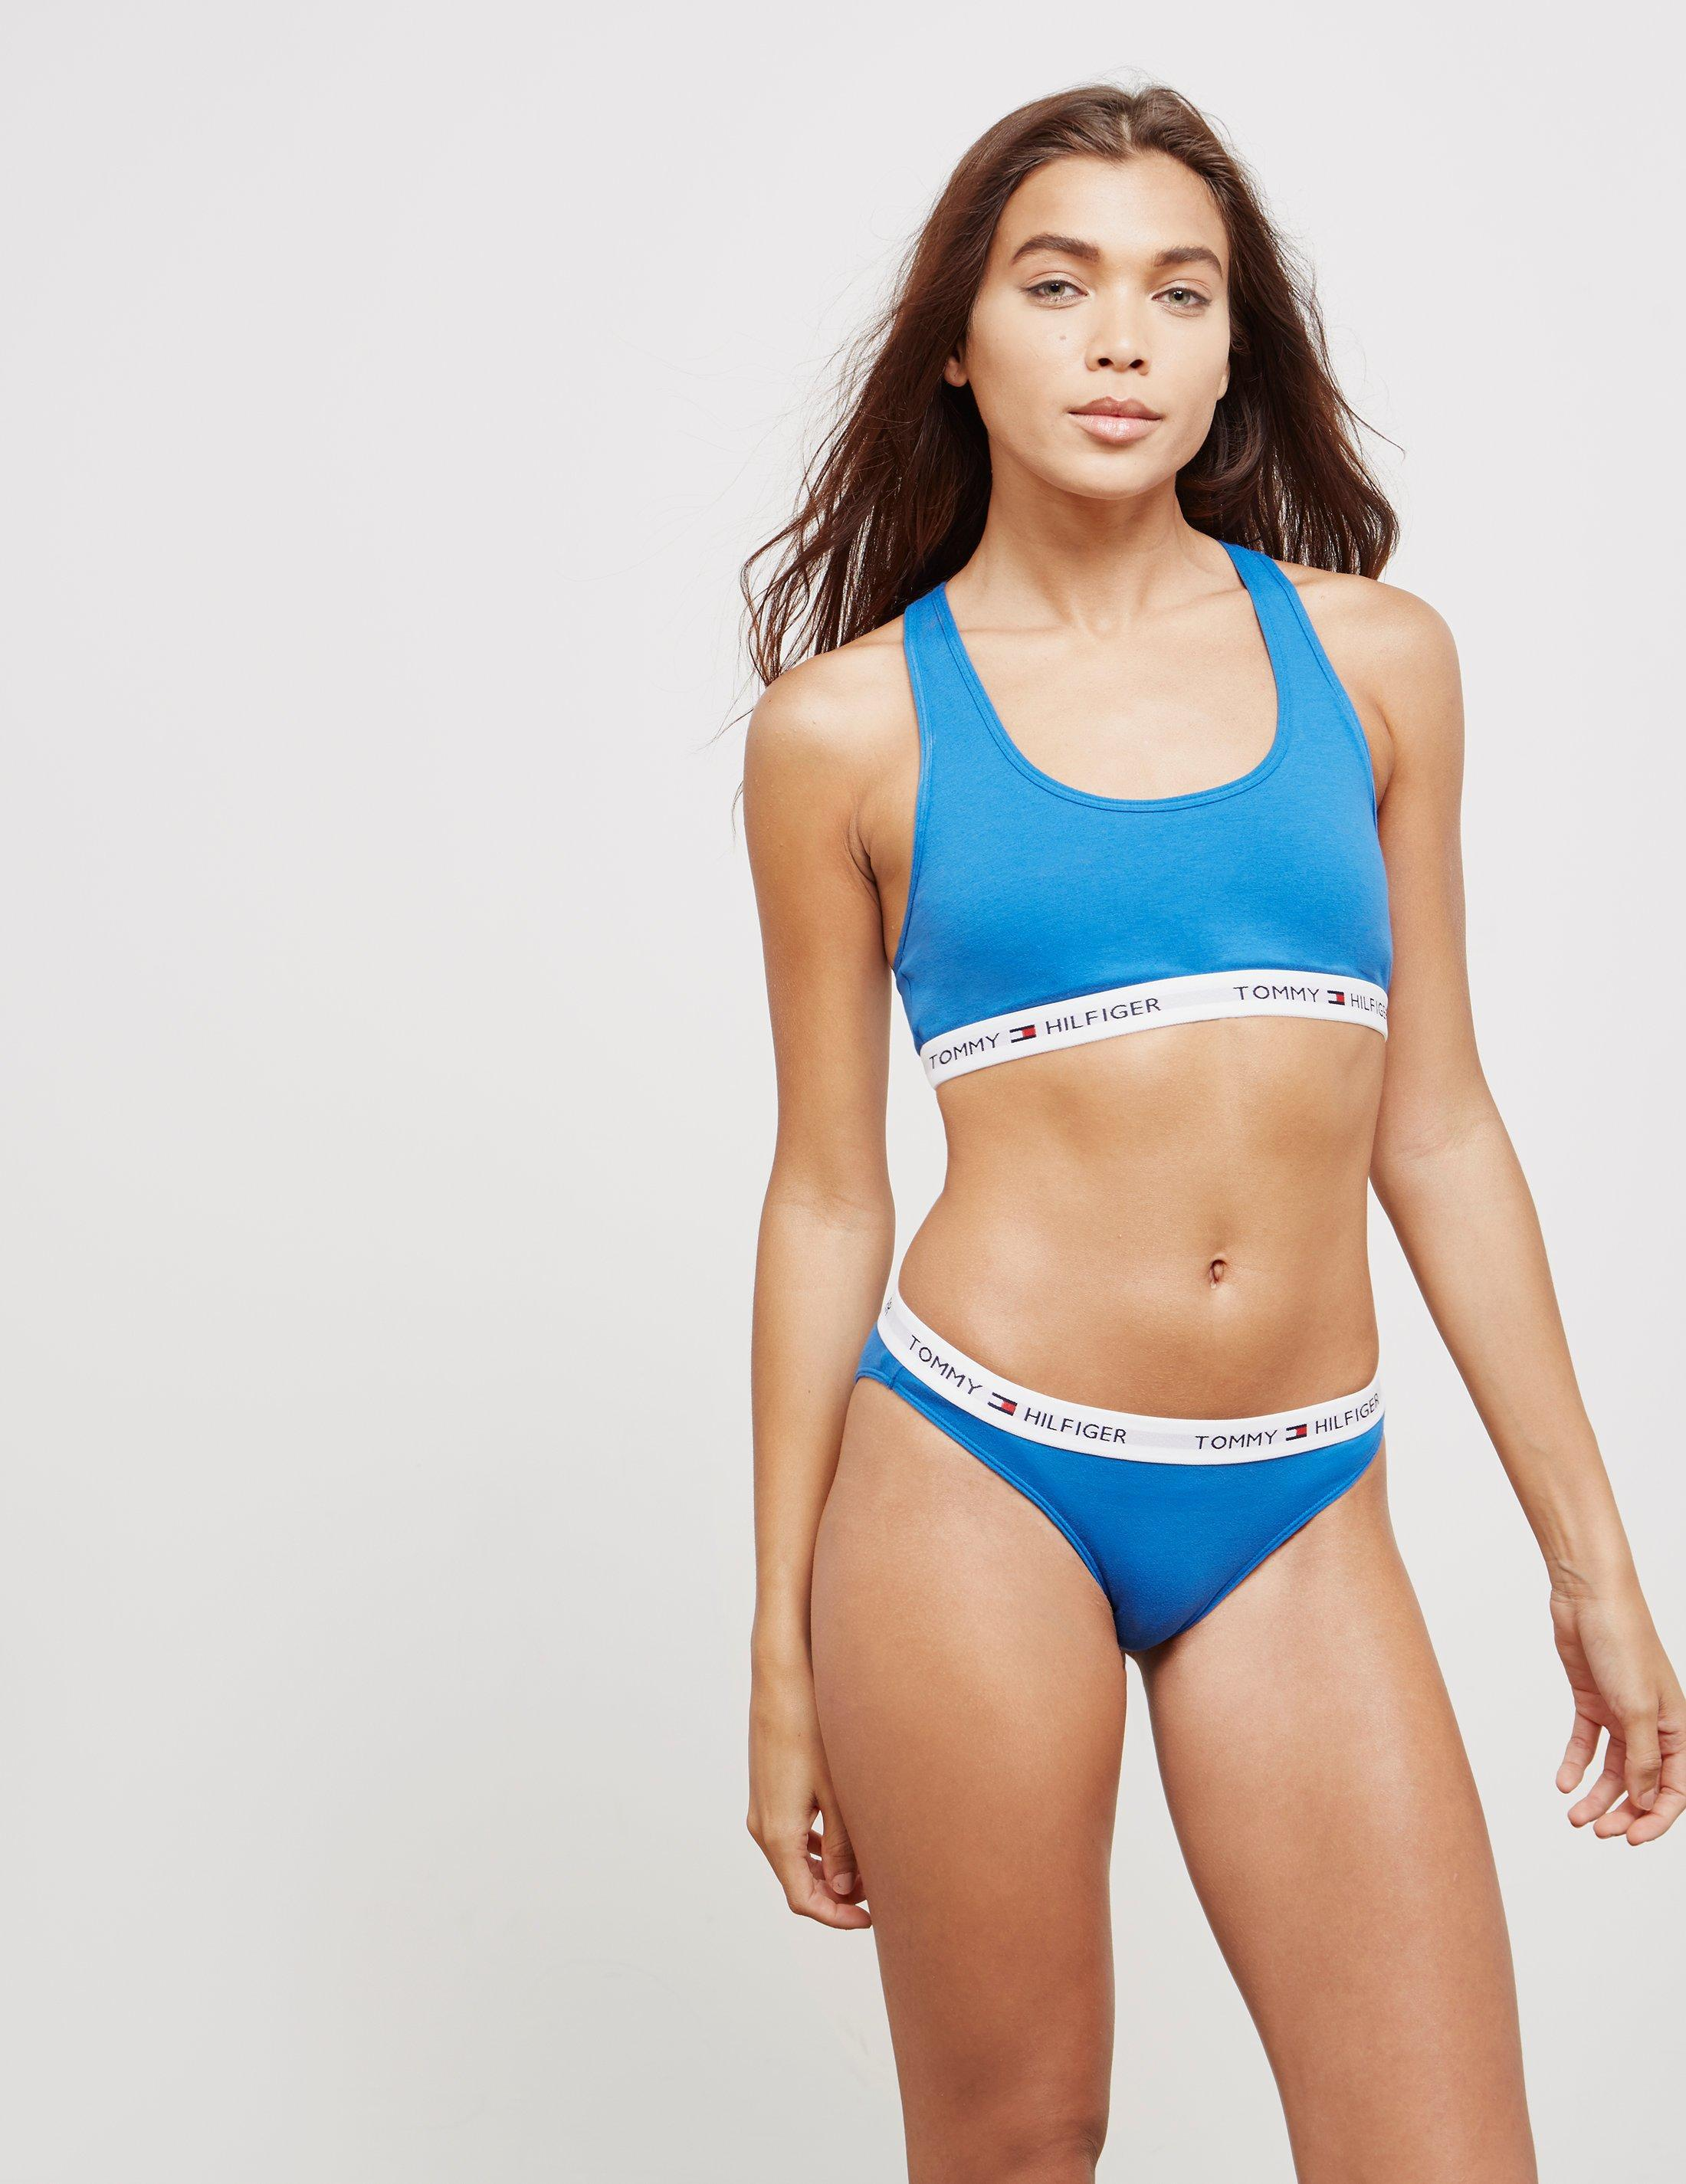 f3727035b2 Tommy Hilfiger Womens Cropped Bralette - Online Exclusive Blue in ...